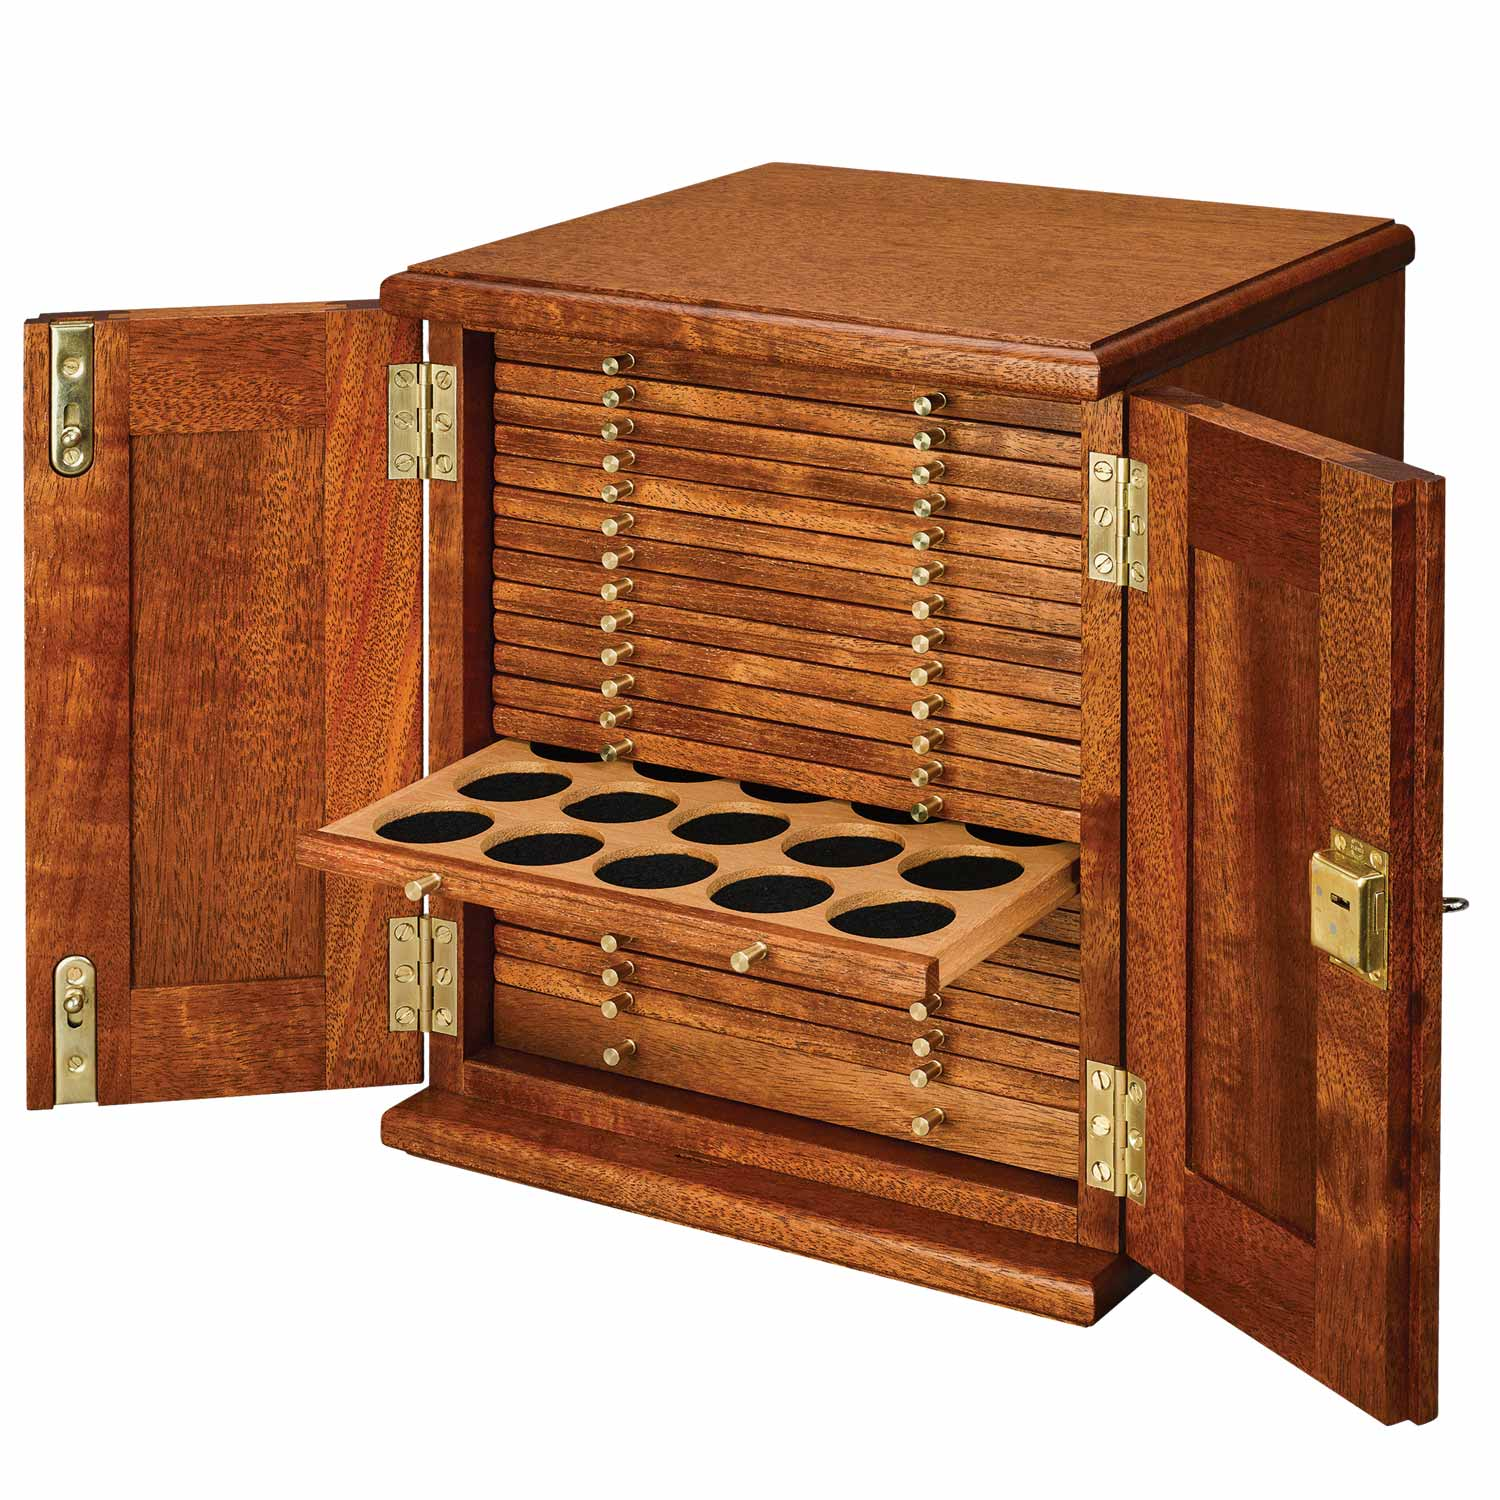 Coin Cabinet 21 Trays with Medium Holes